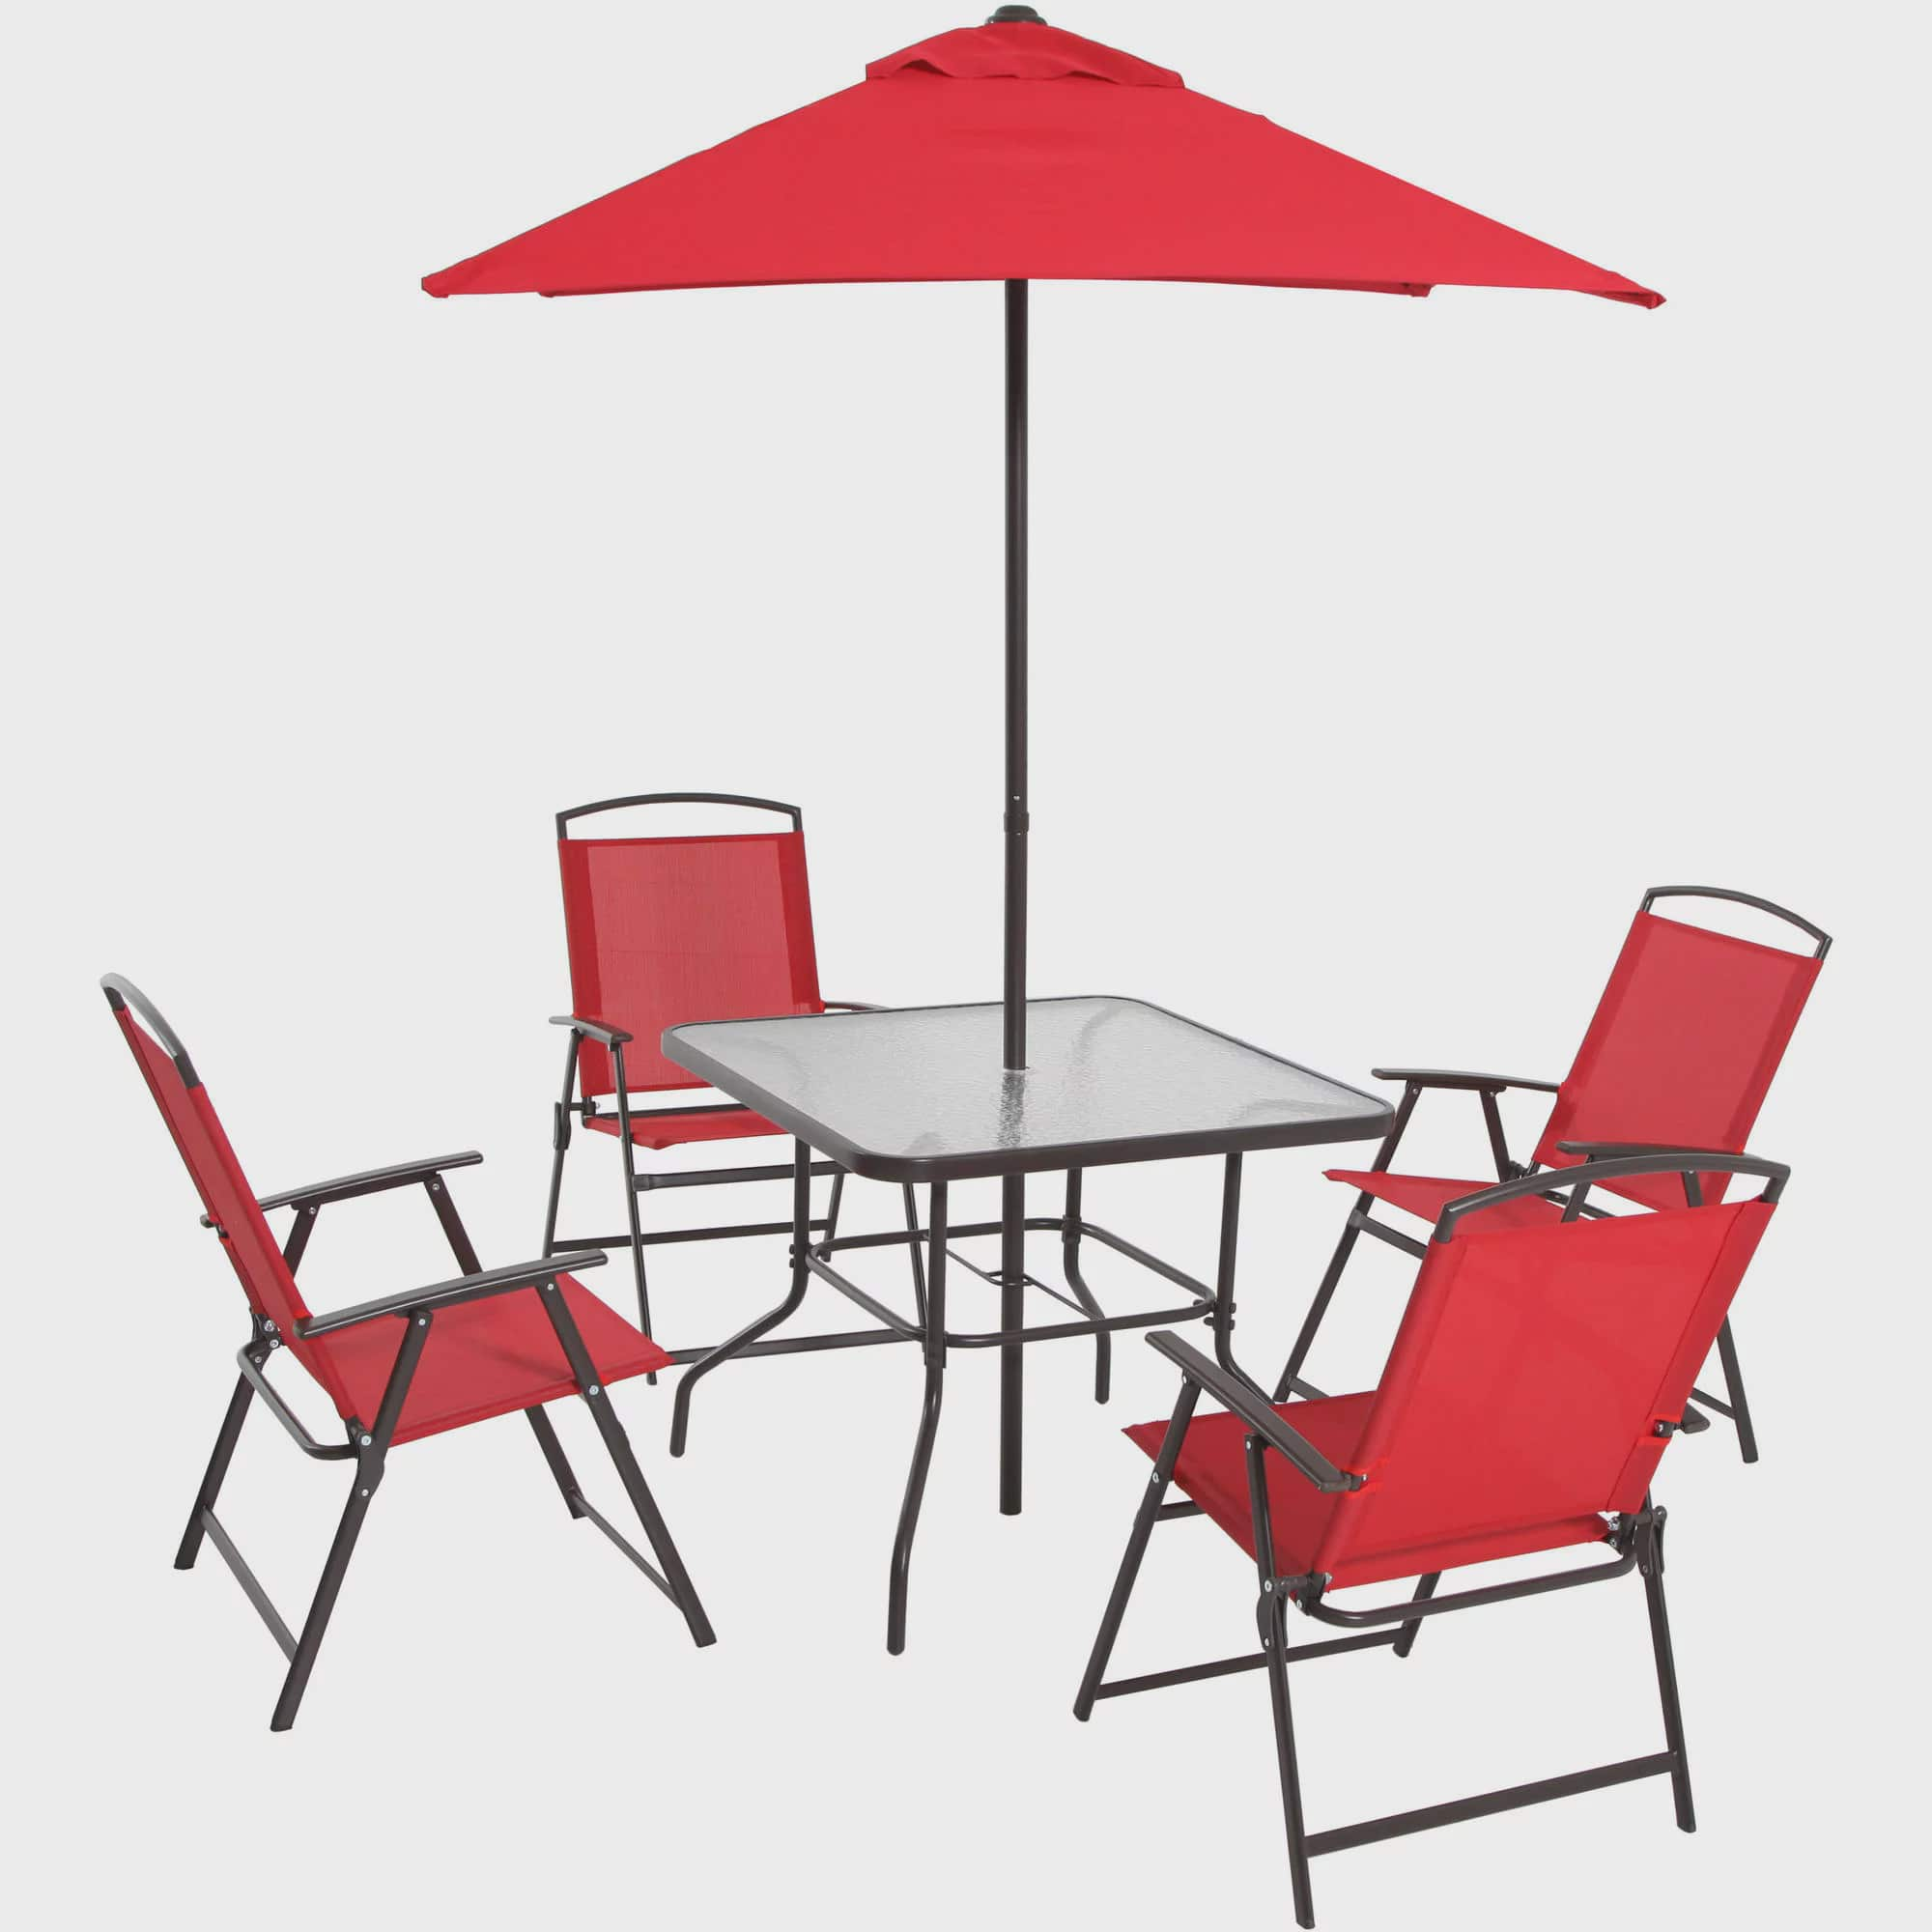 Red Patio Chair mainstays albany lane 6-piece folding dining set, multiple colors